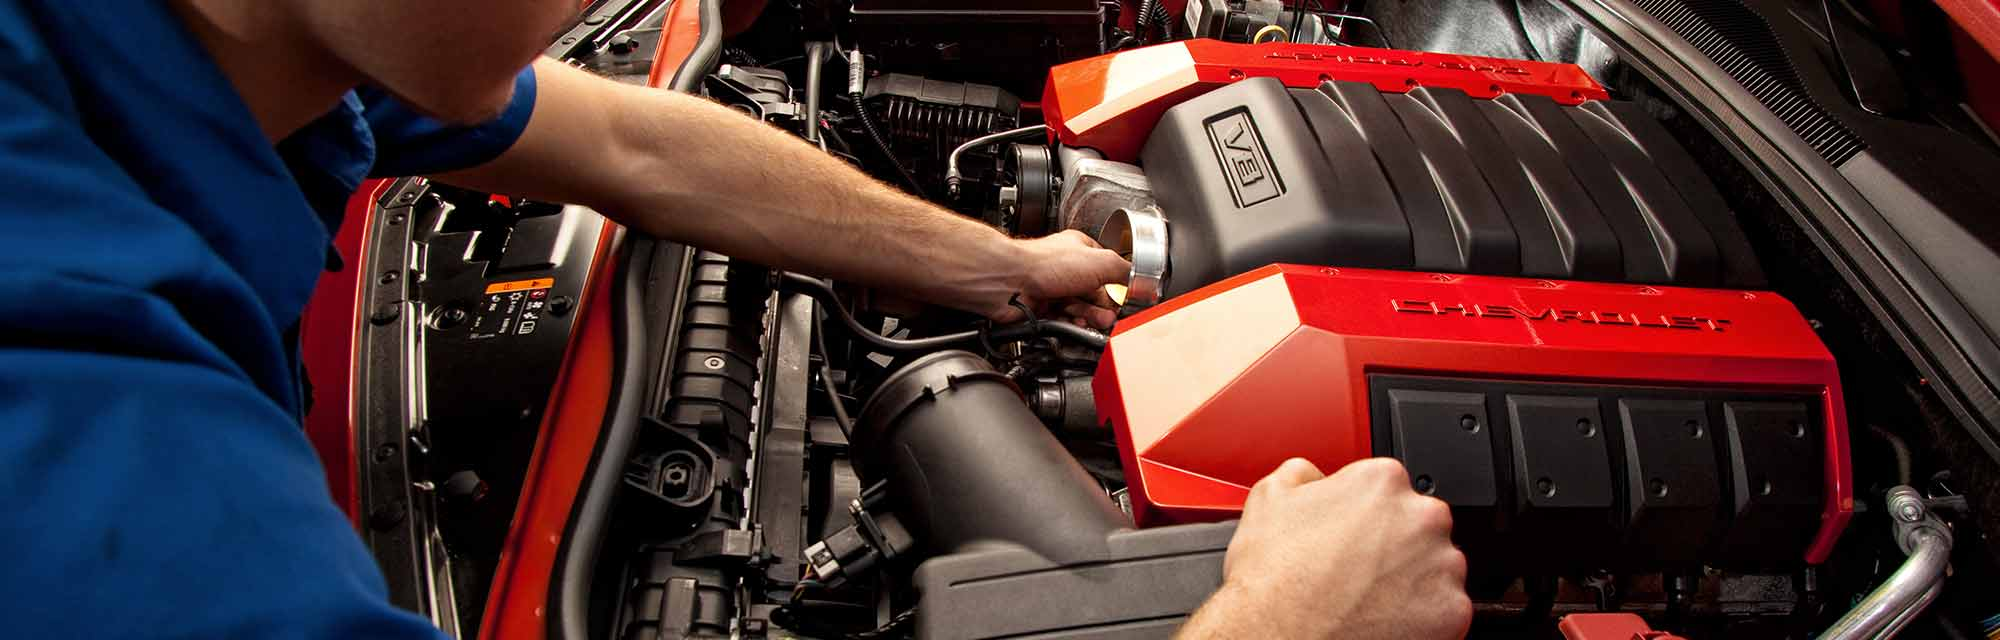 hands on chevy engine